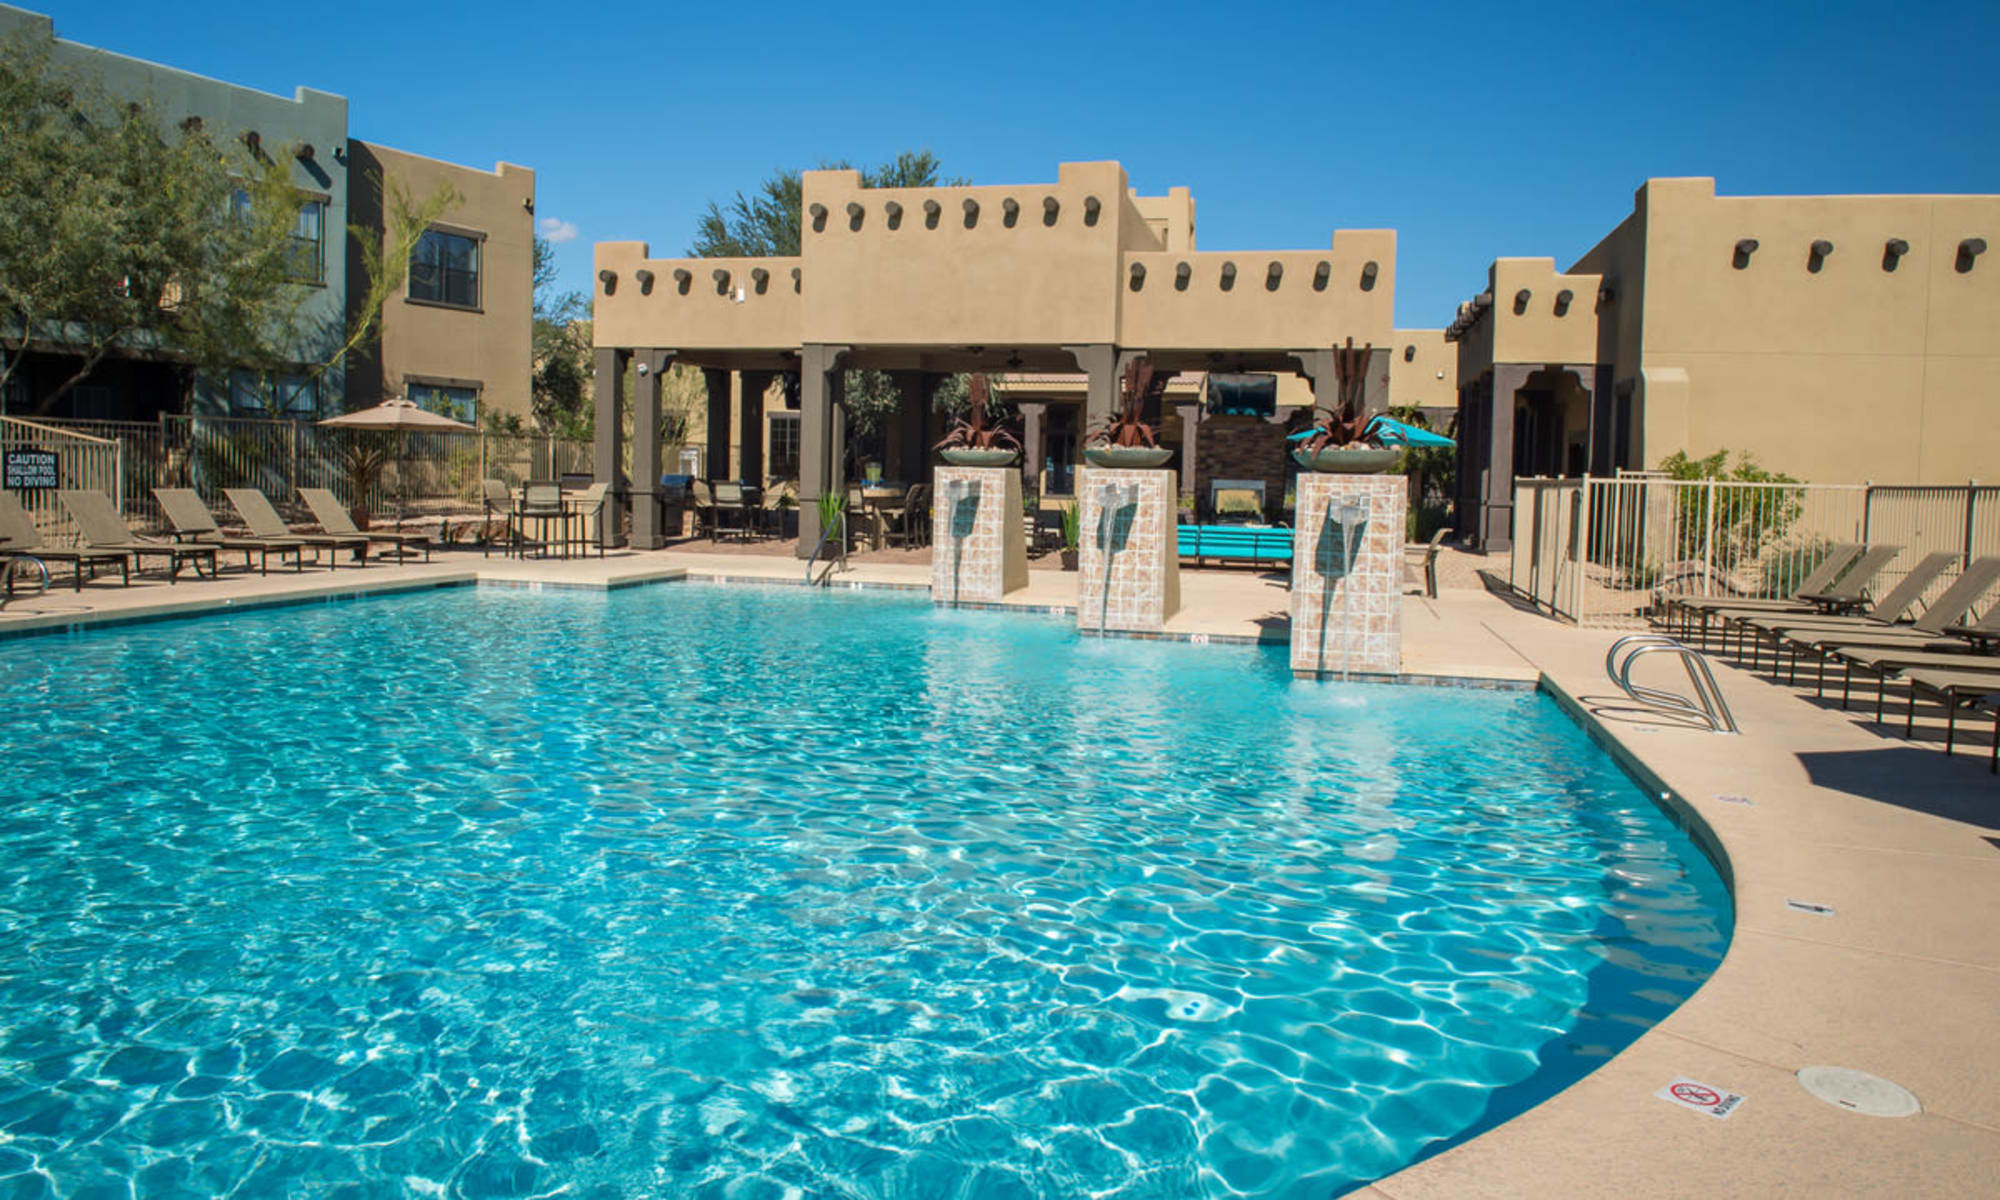 Apartments at Las Colinas at Black Canyon in Phoenix, Arizona